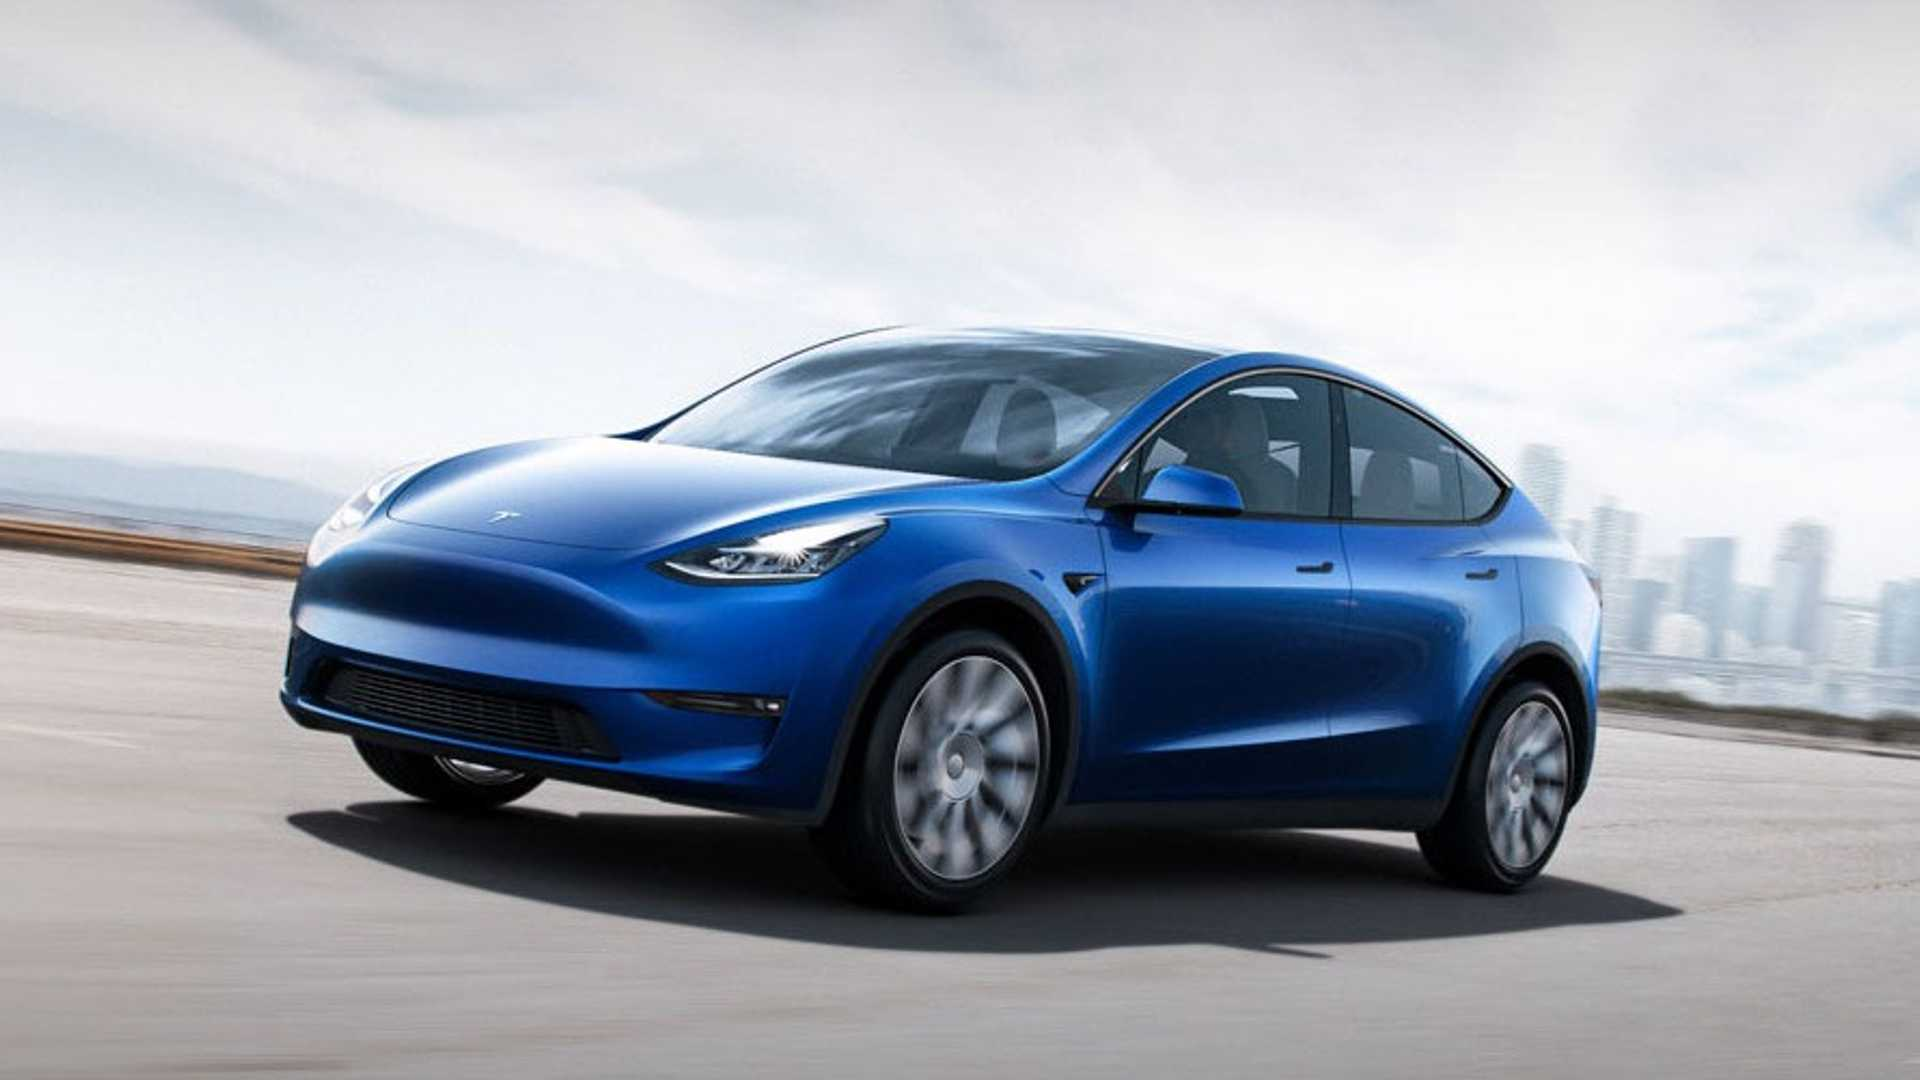 Just as Tesla is preparing to begin producing its Model Y in a new factory in Germany, CEO Elon Musk let it slip that the battery SUV would differ from its North American spec.